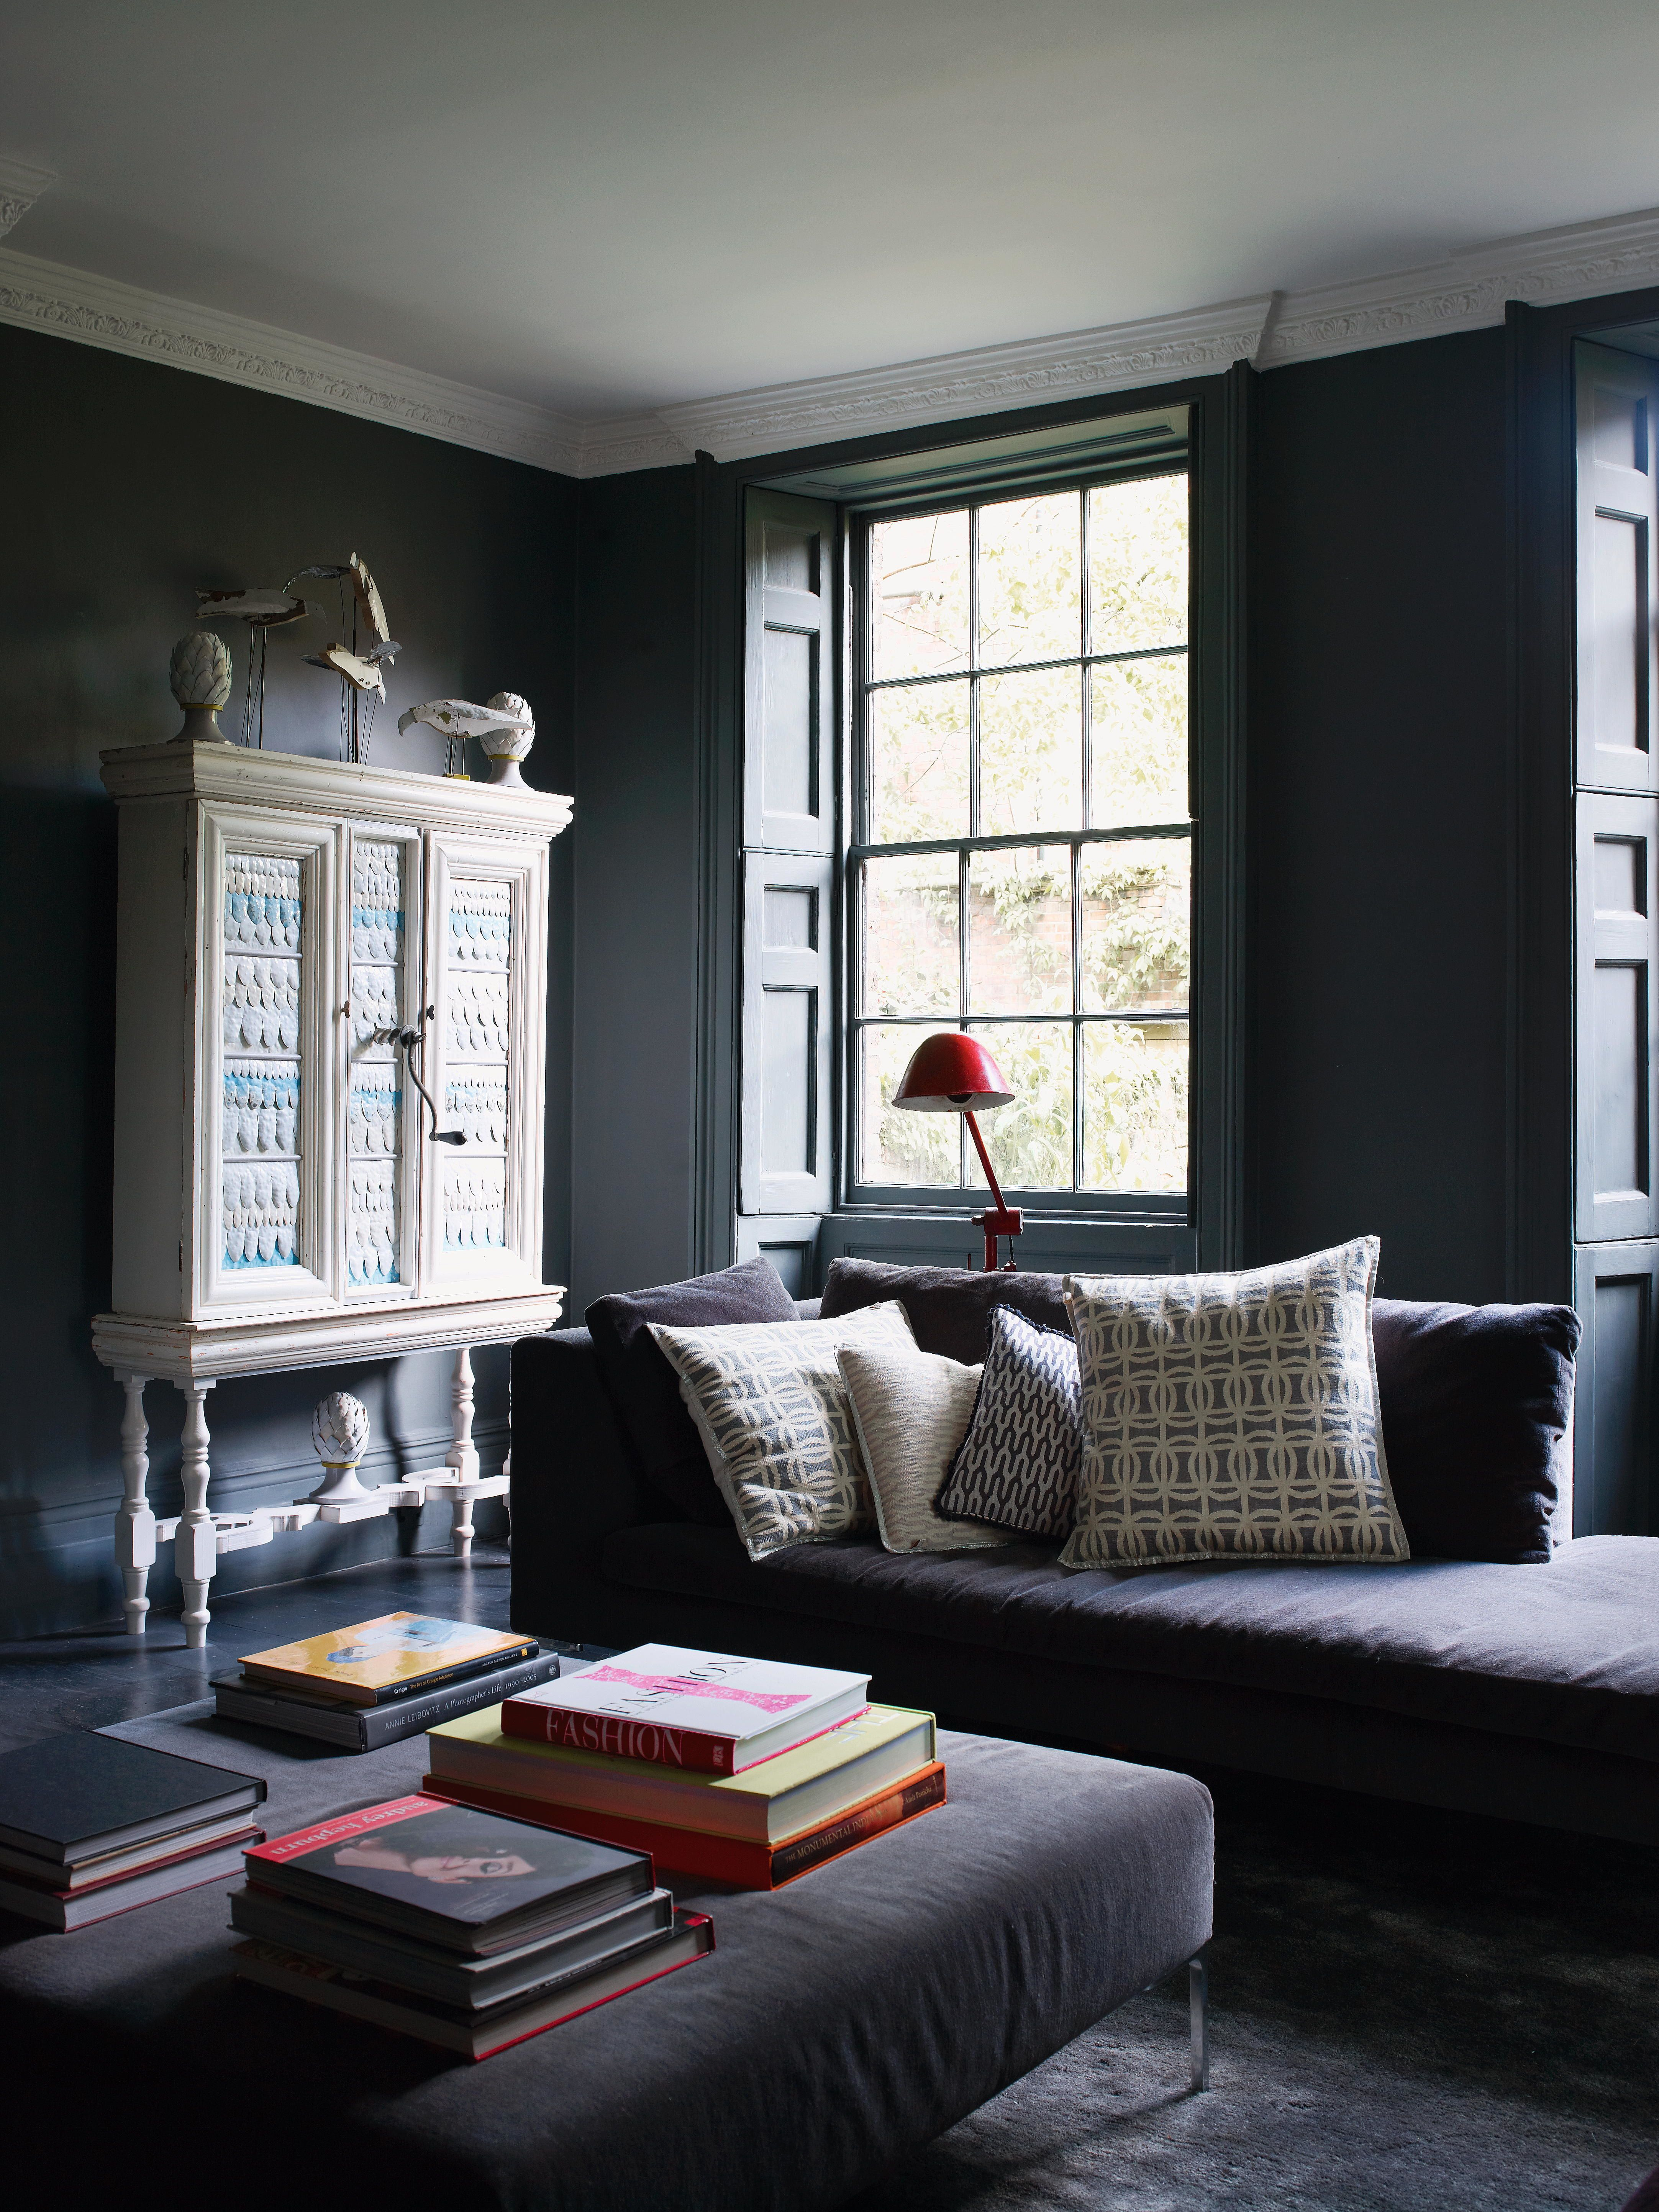 How To Find The Perfect Shade Of Gray Grey Bedroom With Pop Of